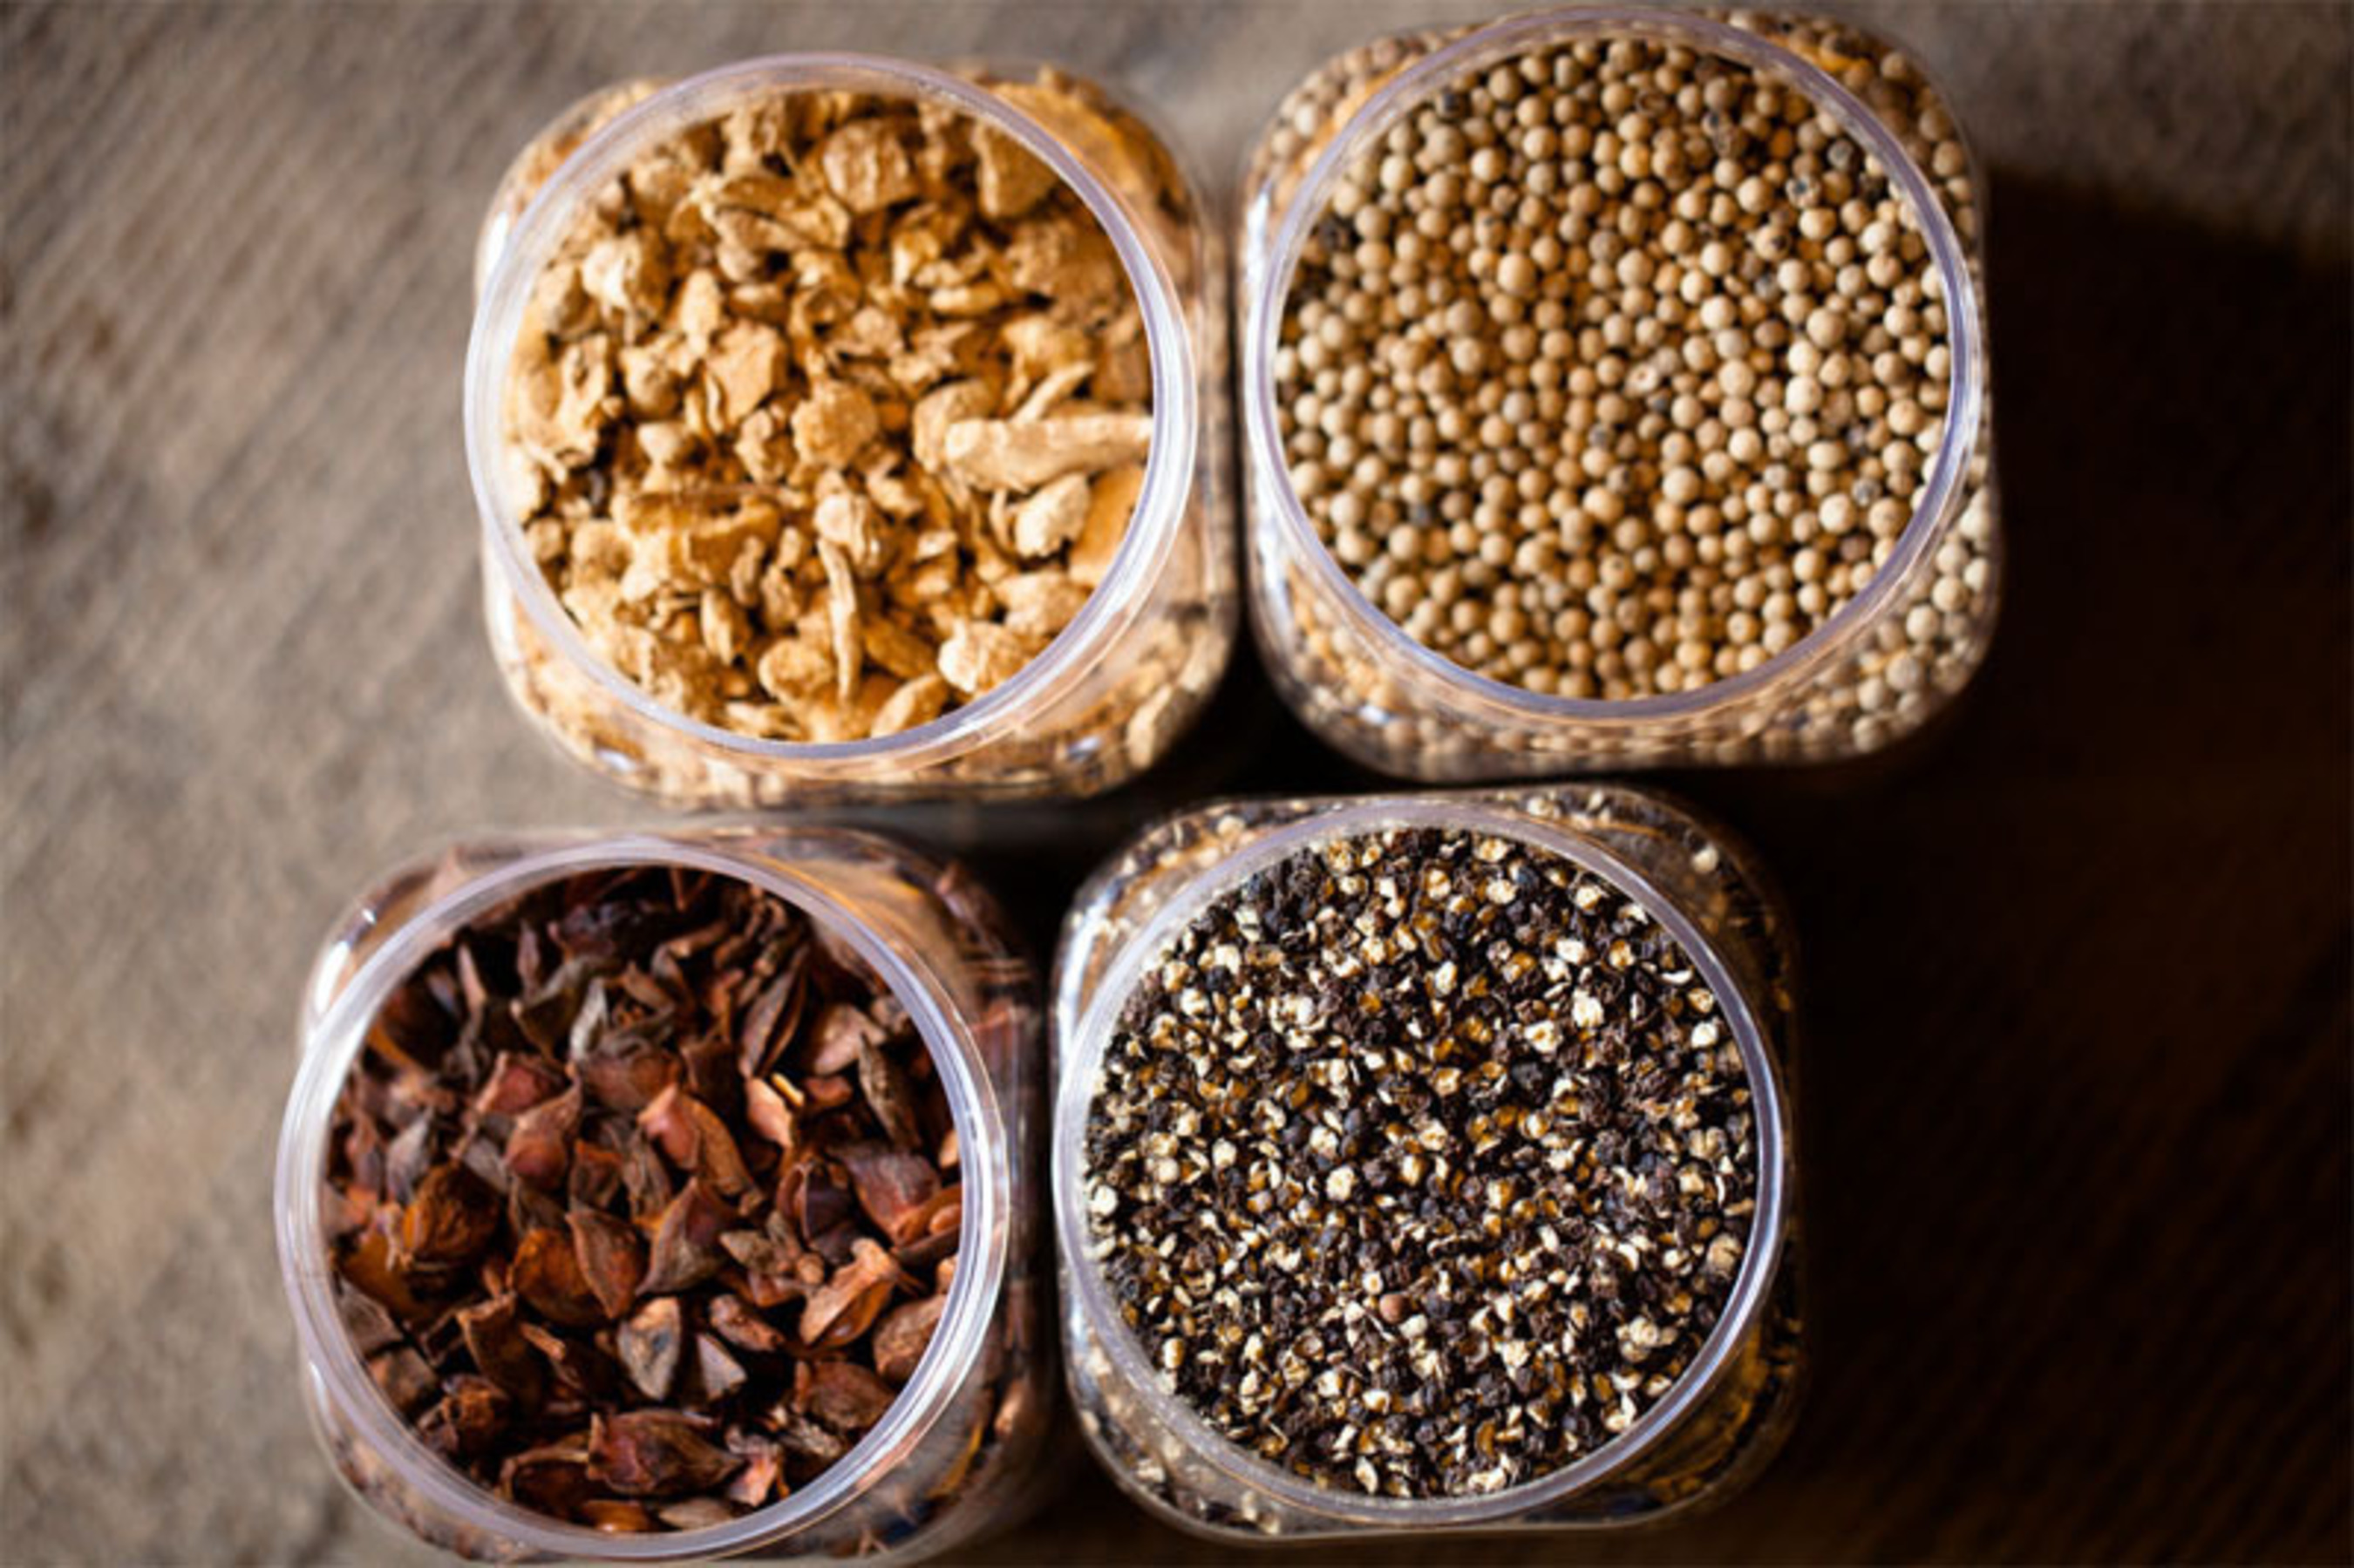 The 85,300-sq.-ft (26,000-sq.-mt) spice processing facility will enhance cleaning and storage processes for black pepper, and adds capabilities to process cinnamon, ginger and nutmeg products.  (PRNewsFoto/Olam Spices & Vegetable Ingredients)